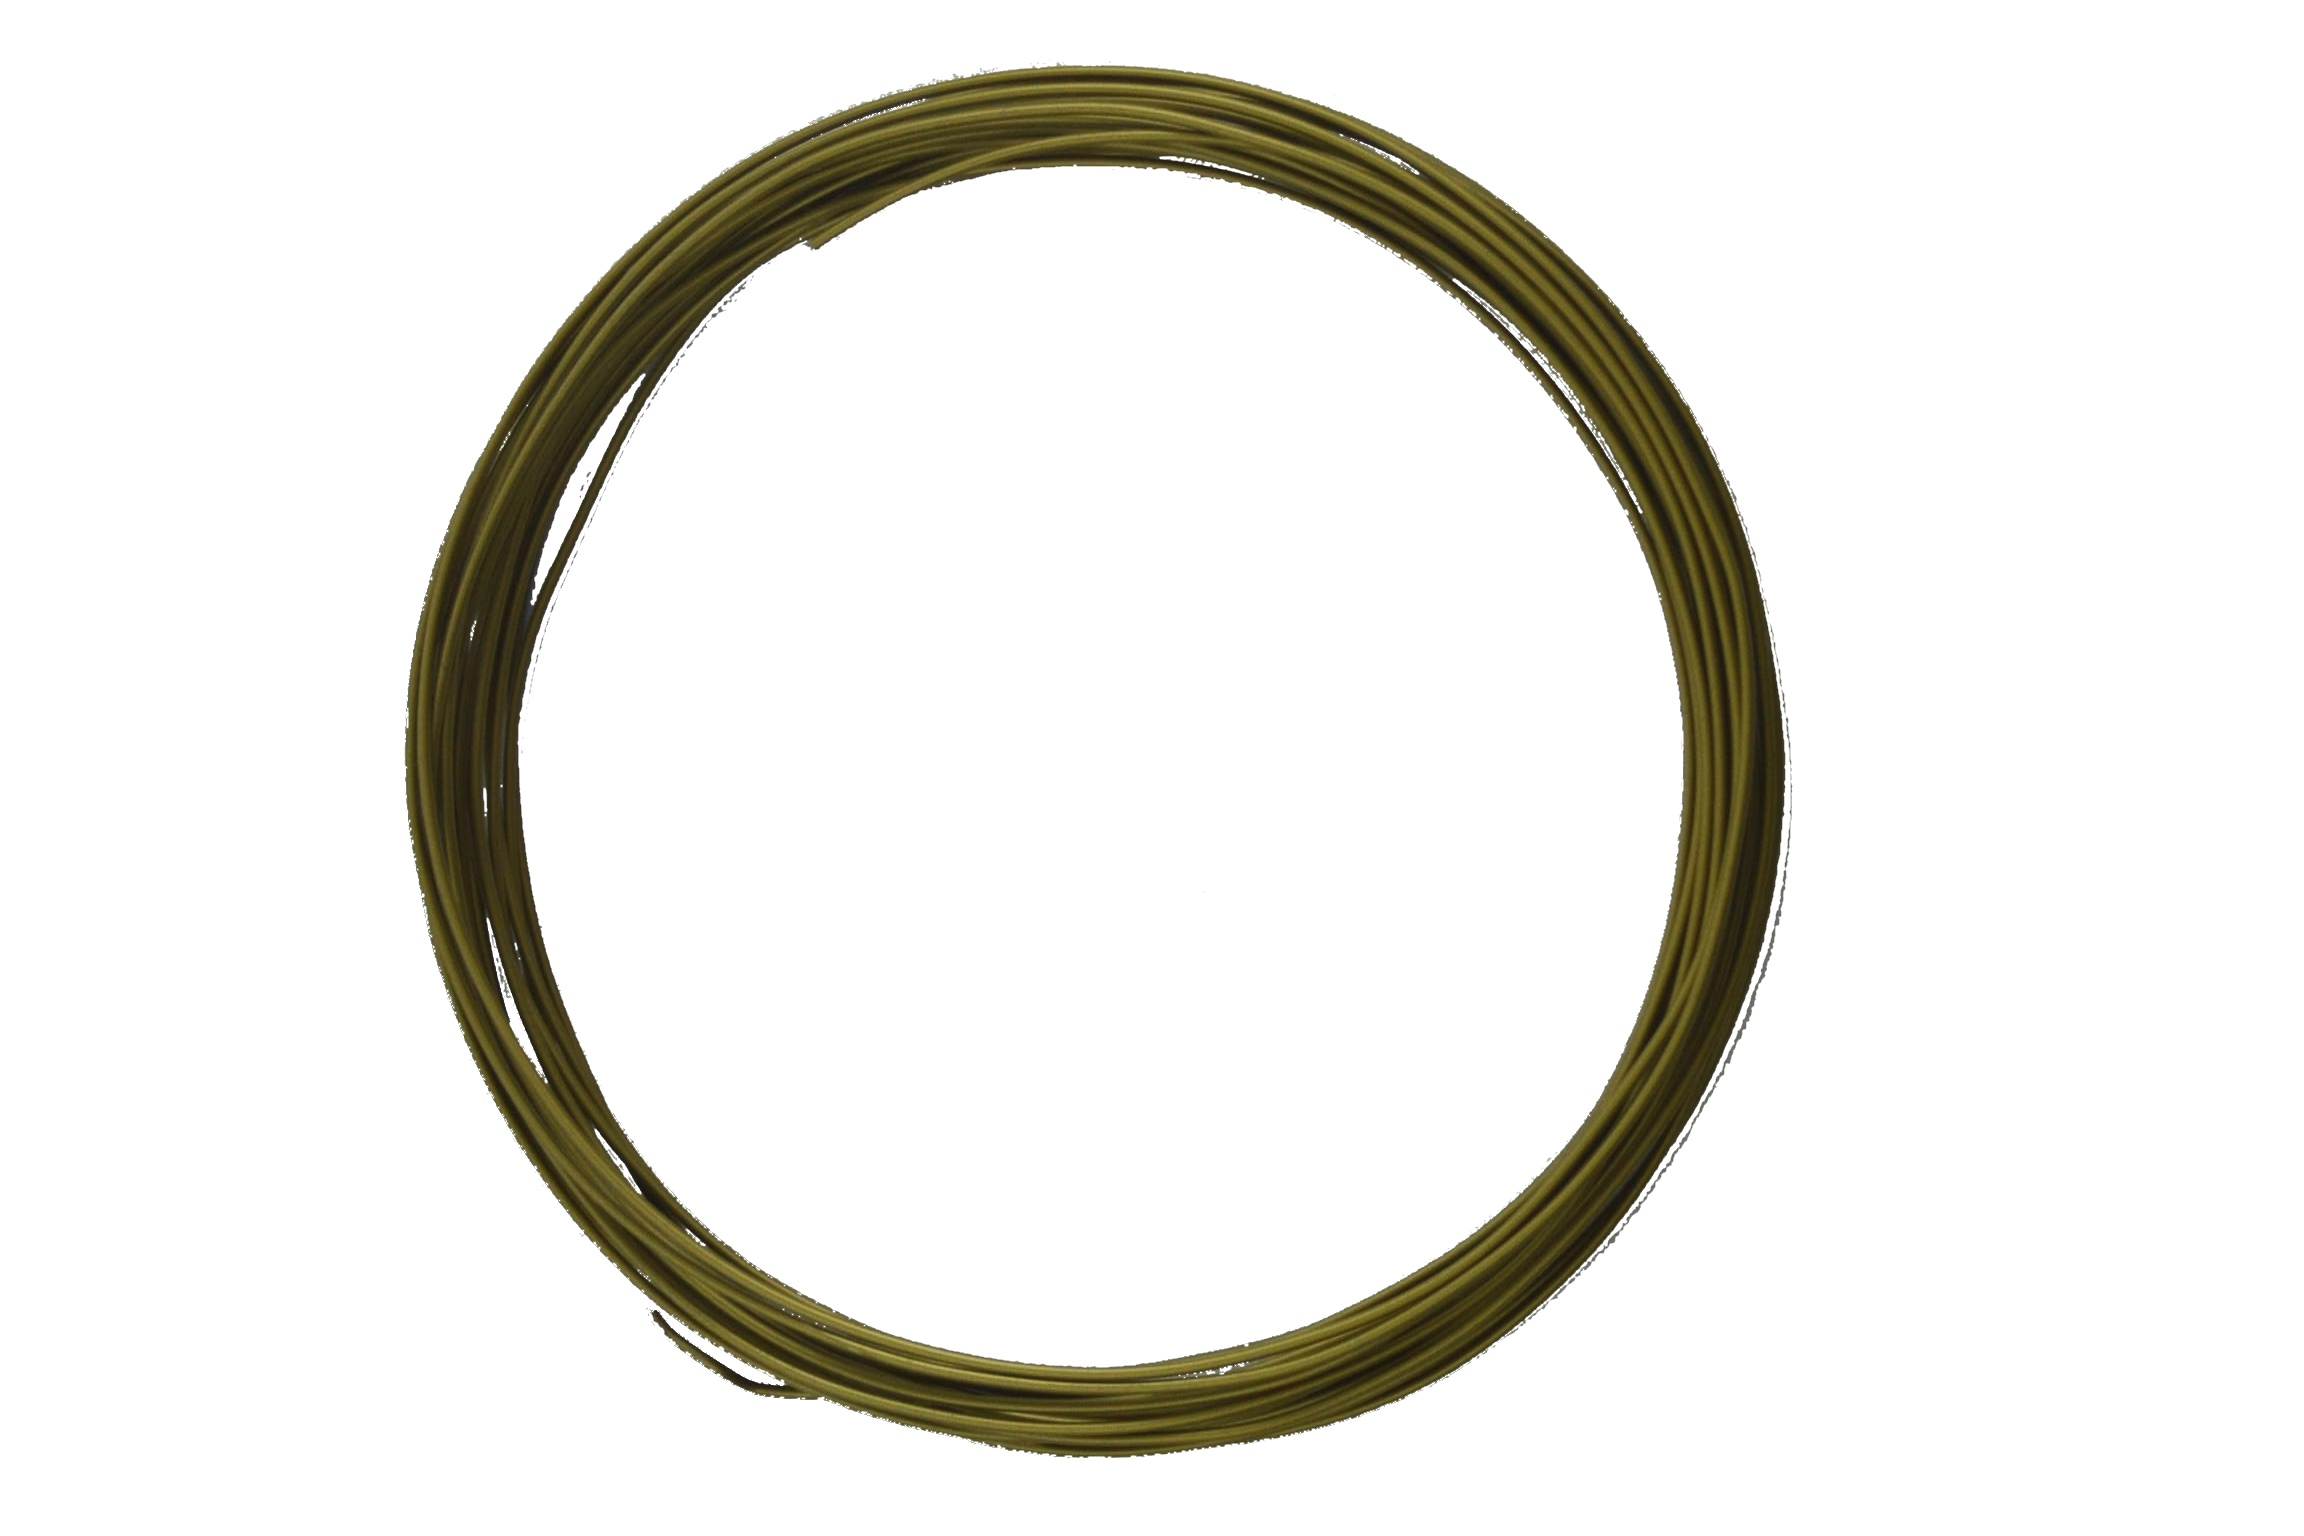 Metal composite filament bronz 1,75 mm 10 m